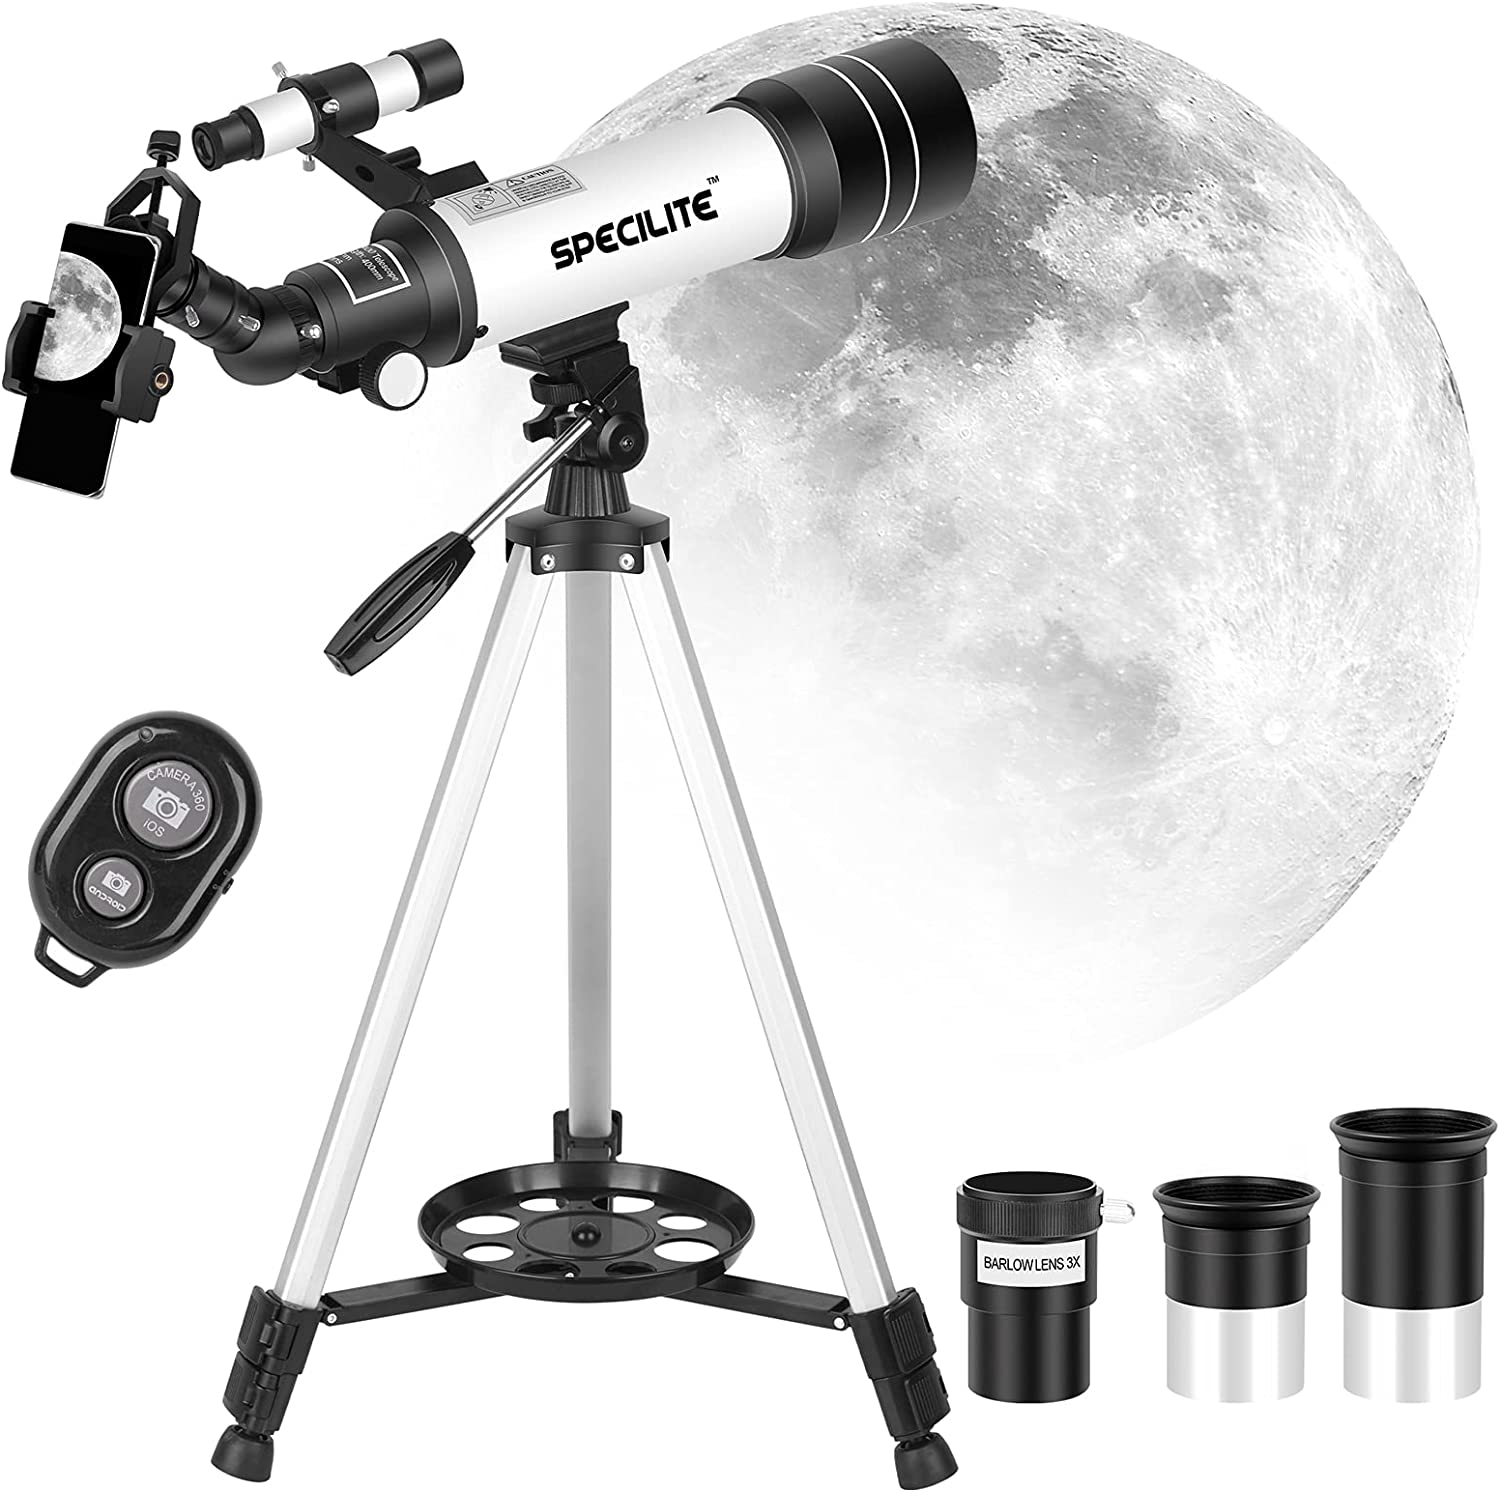 SPECILITE New popularity Telescope for Kids Adults Astronomy 70mm Topics on TV Beginners Ap